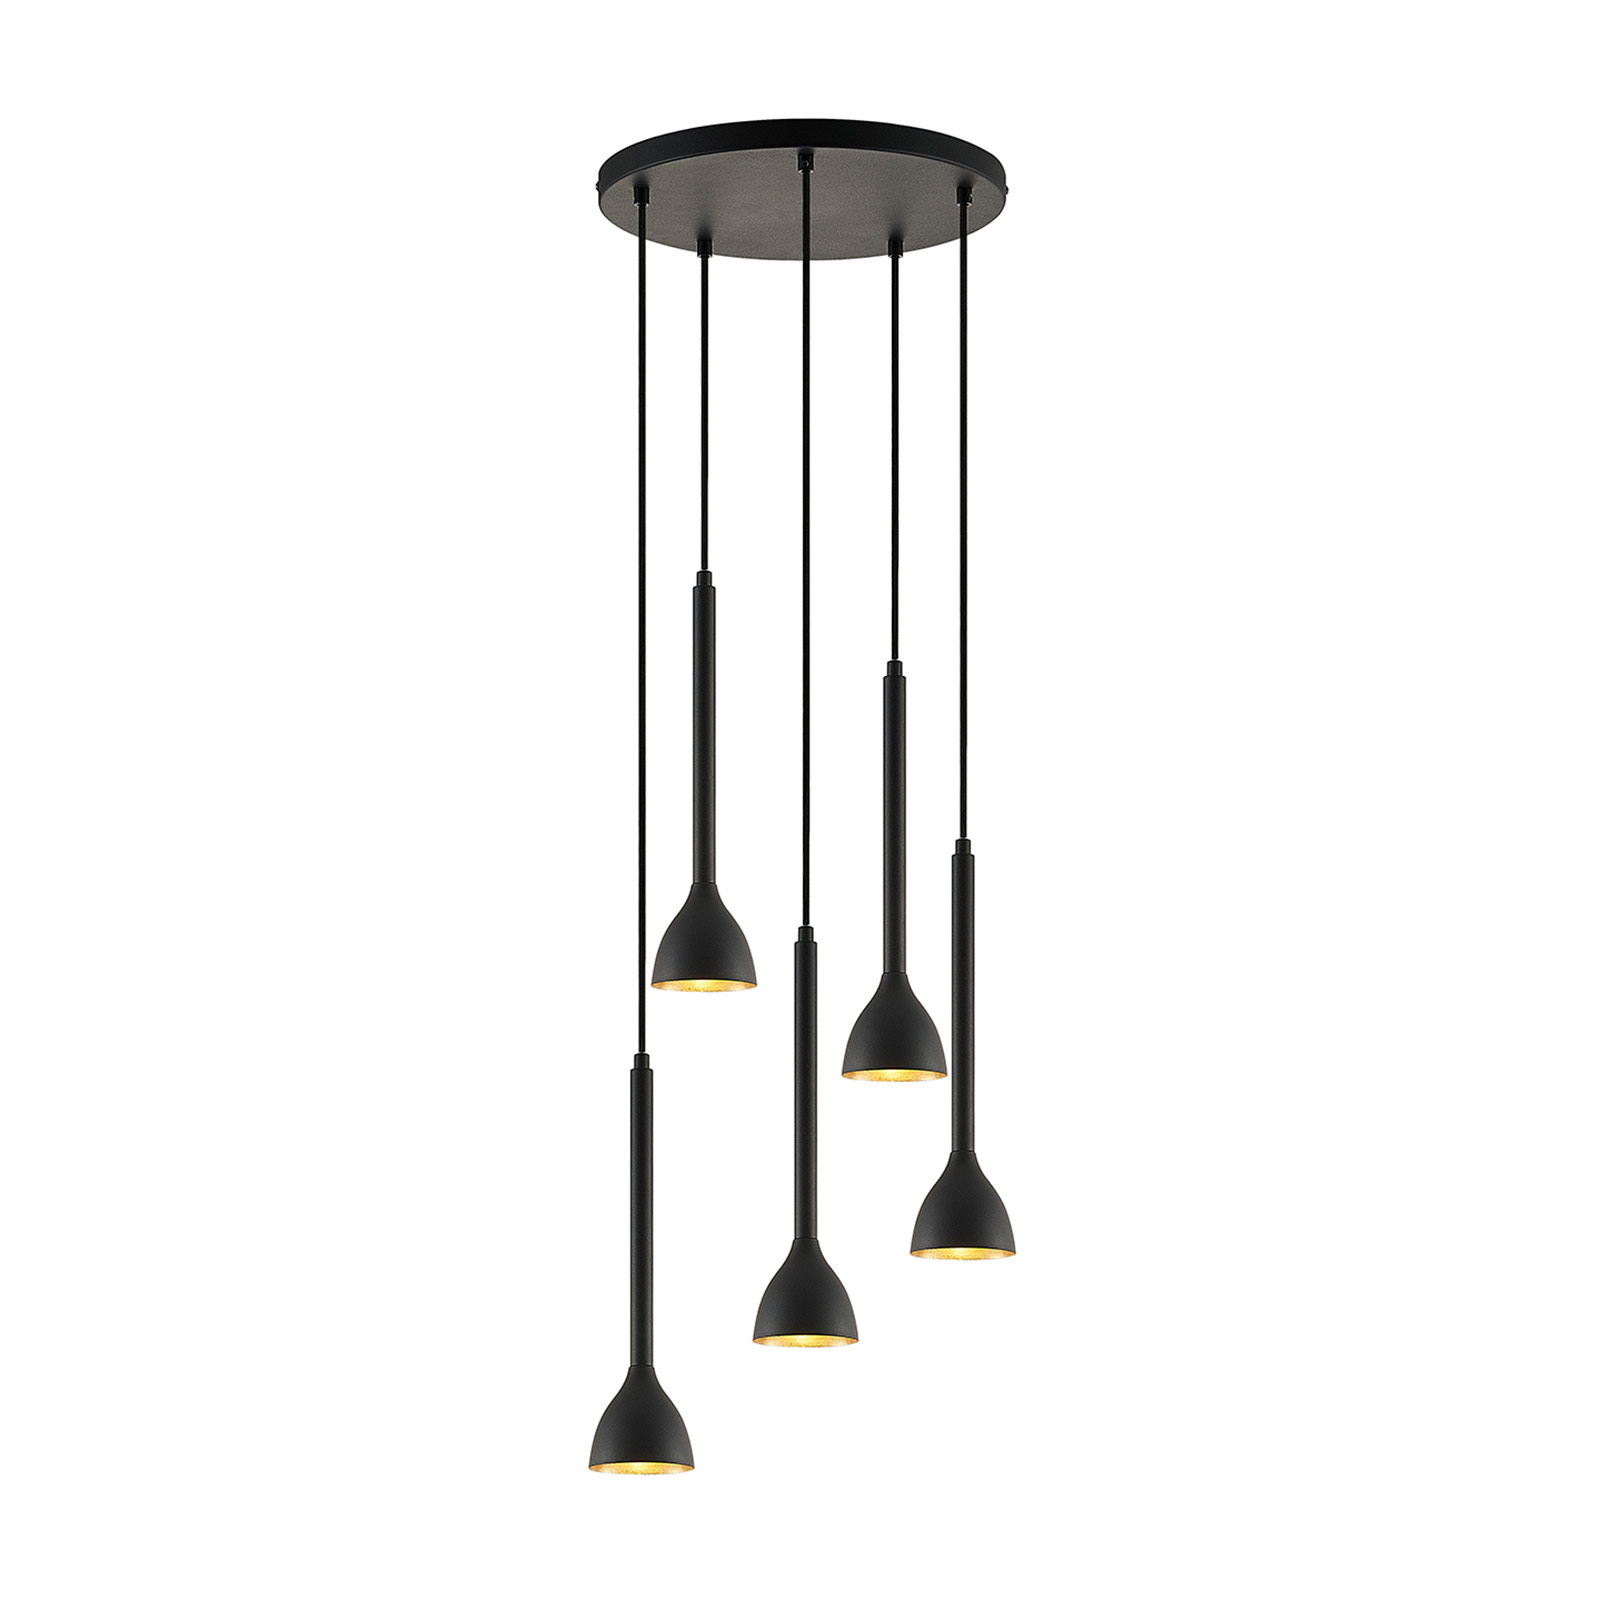 Suspension Nordwin, 5 lampes, noir-or